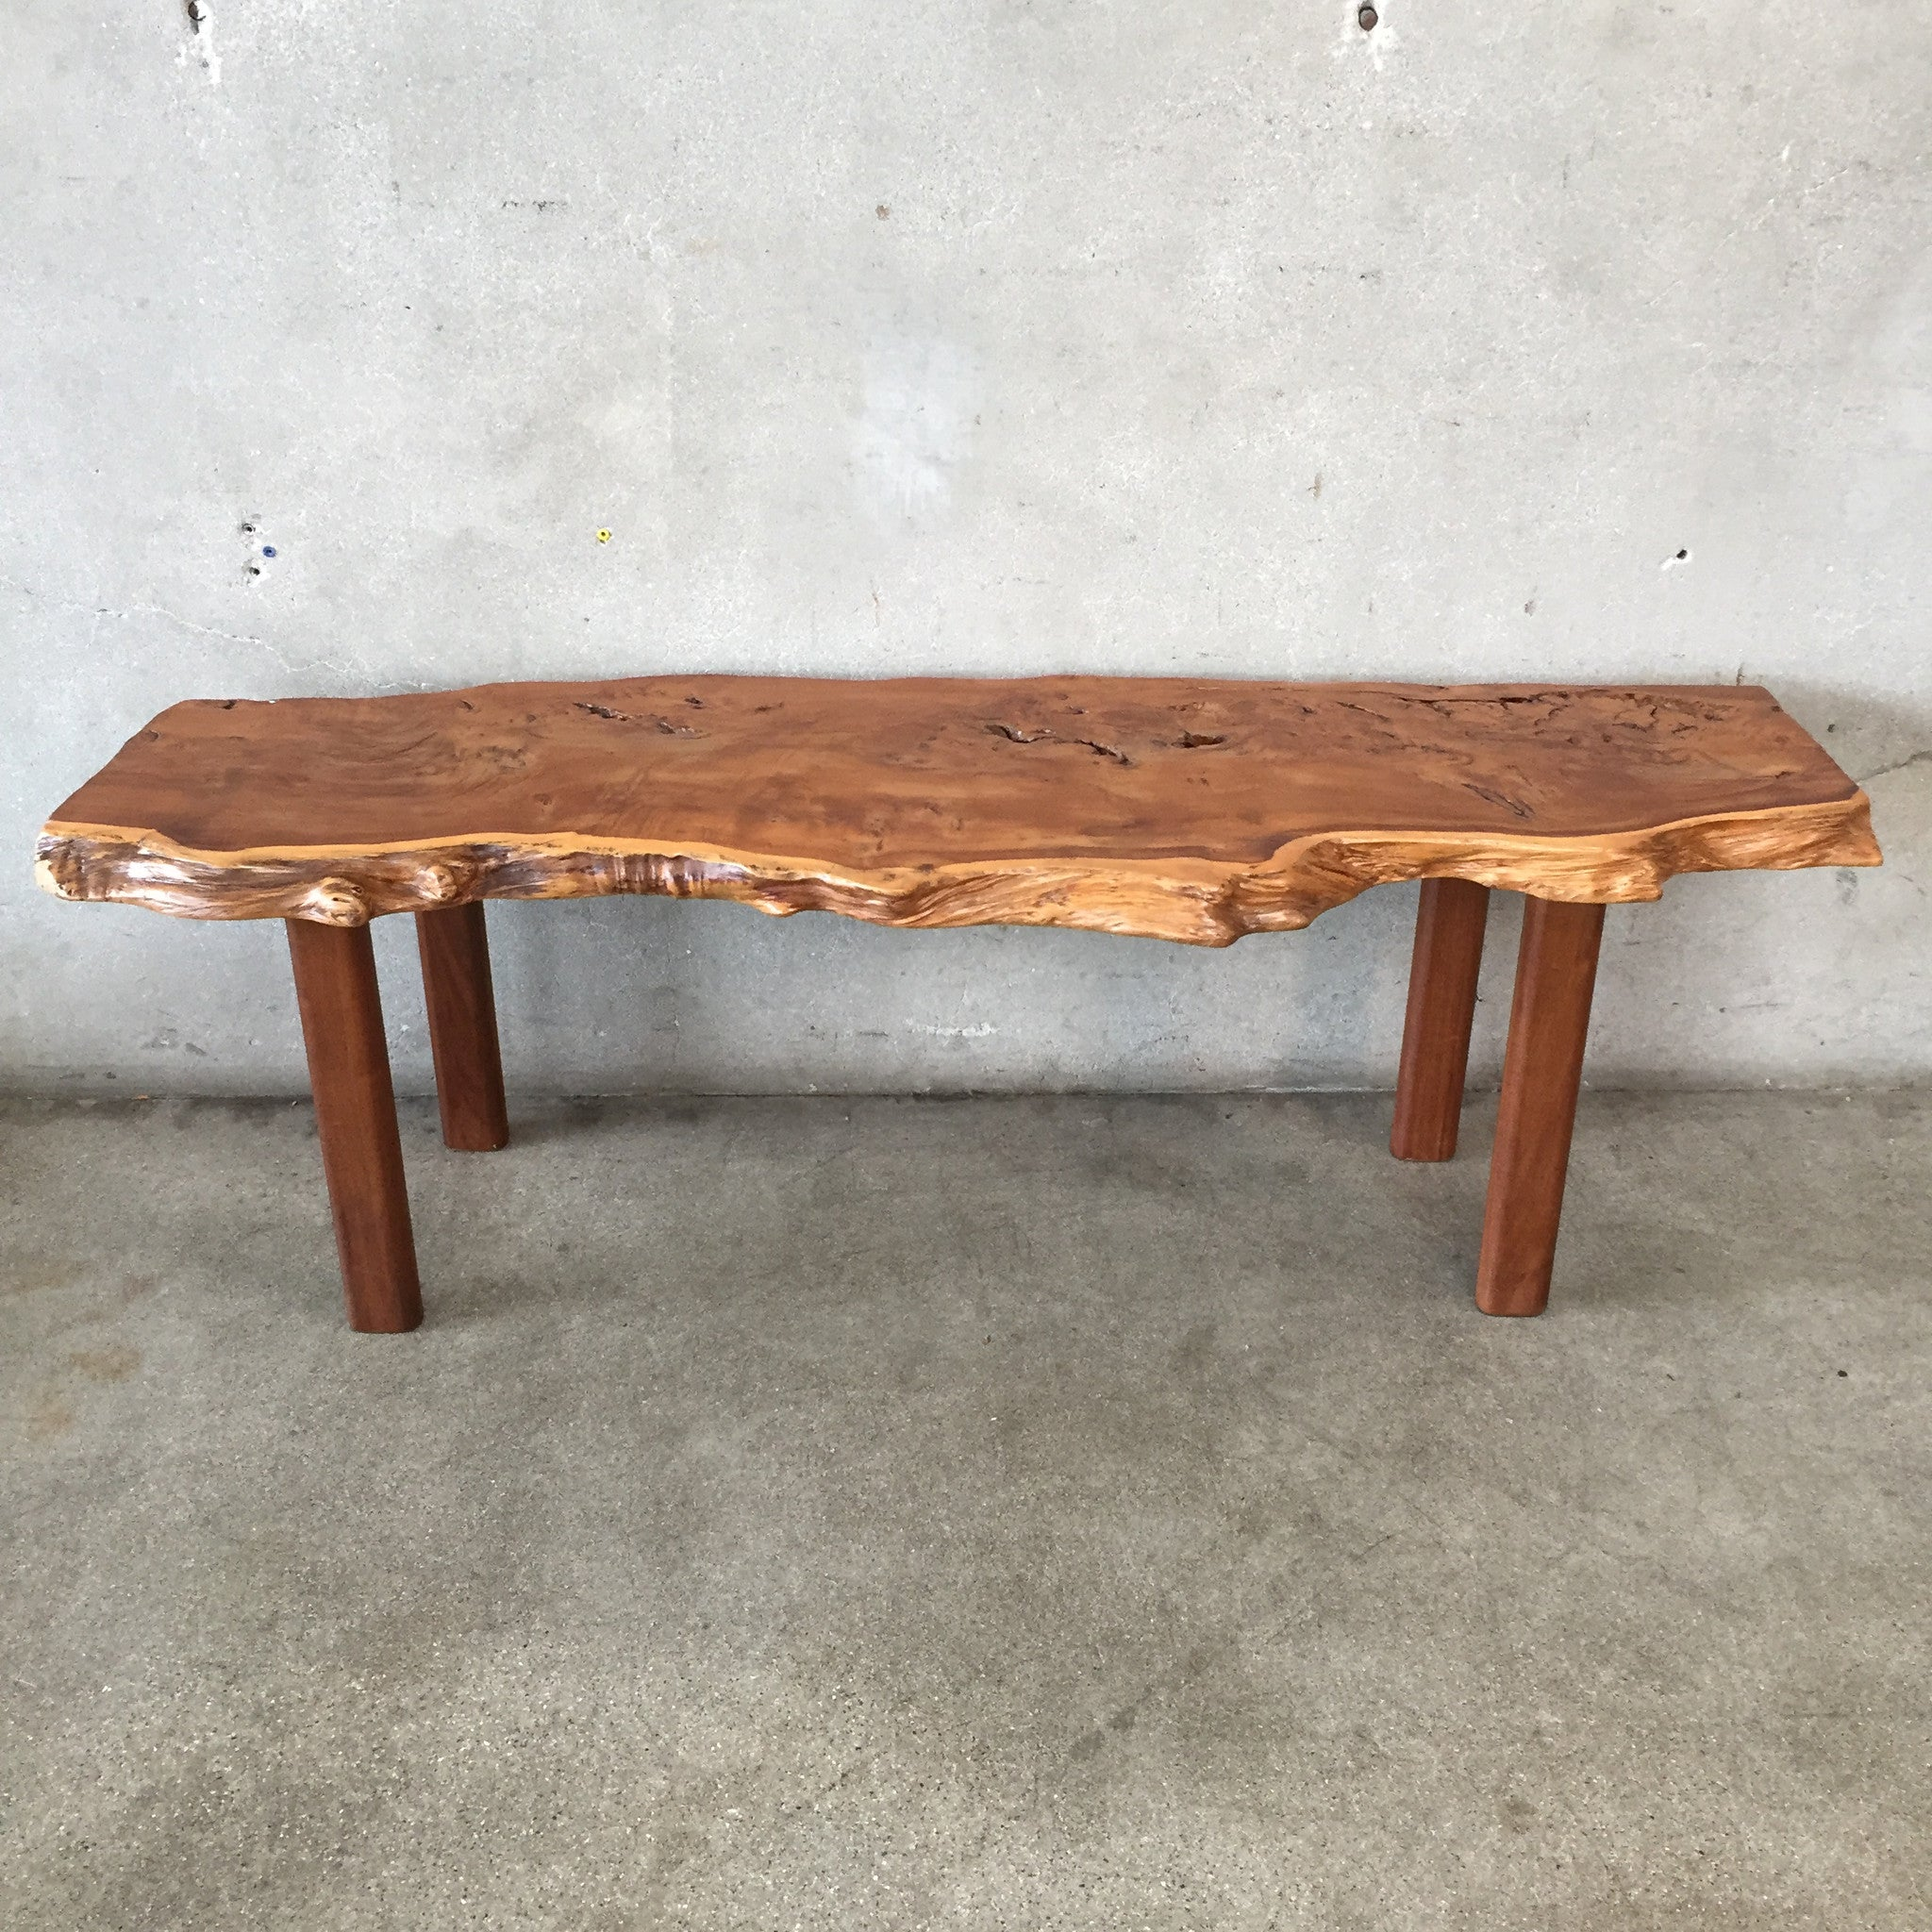 Yew wood live edge slab coffee table urbanamericana Live wood coffee table